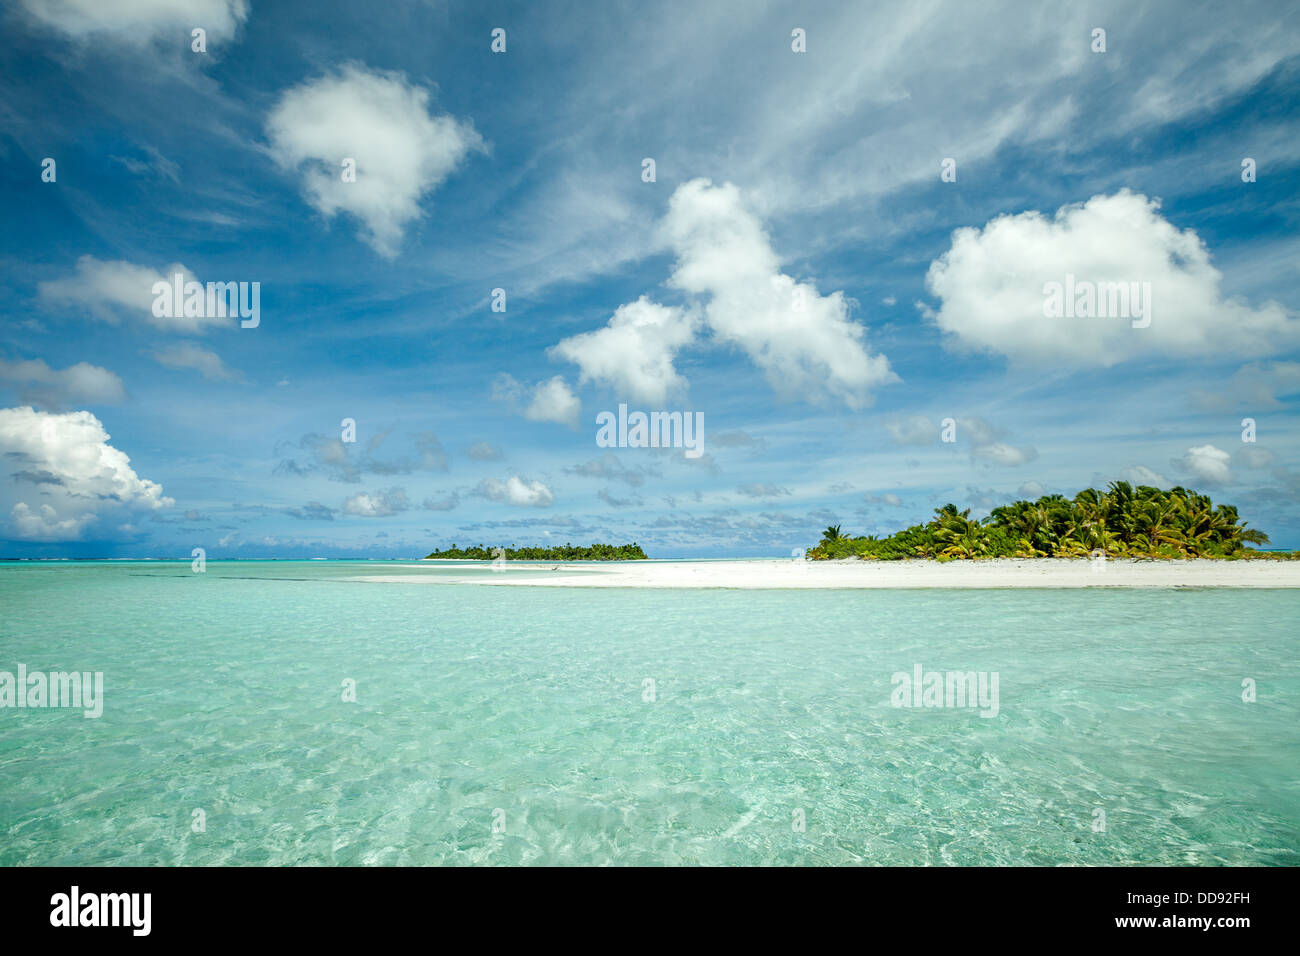 Cook Islands, Aitutaki island Lagoon, the white sandy beach of Honeymoon island with Maina atoll in background  - Stock Image